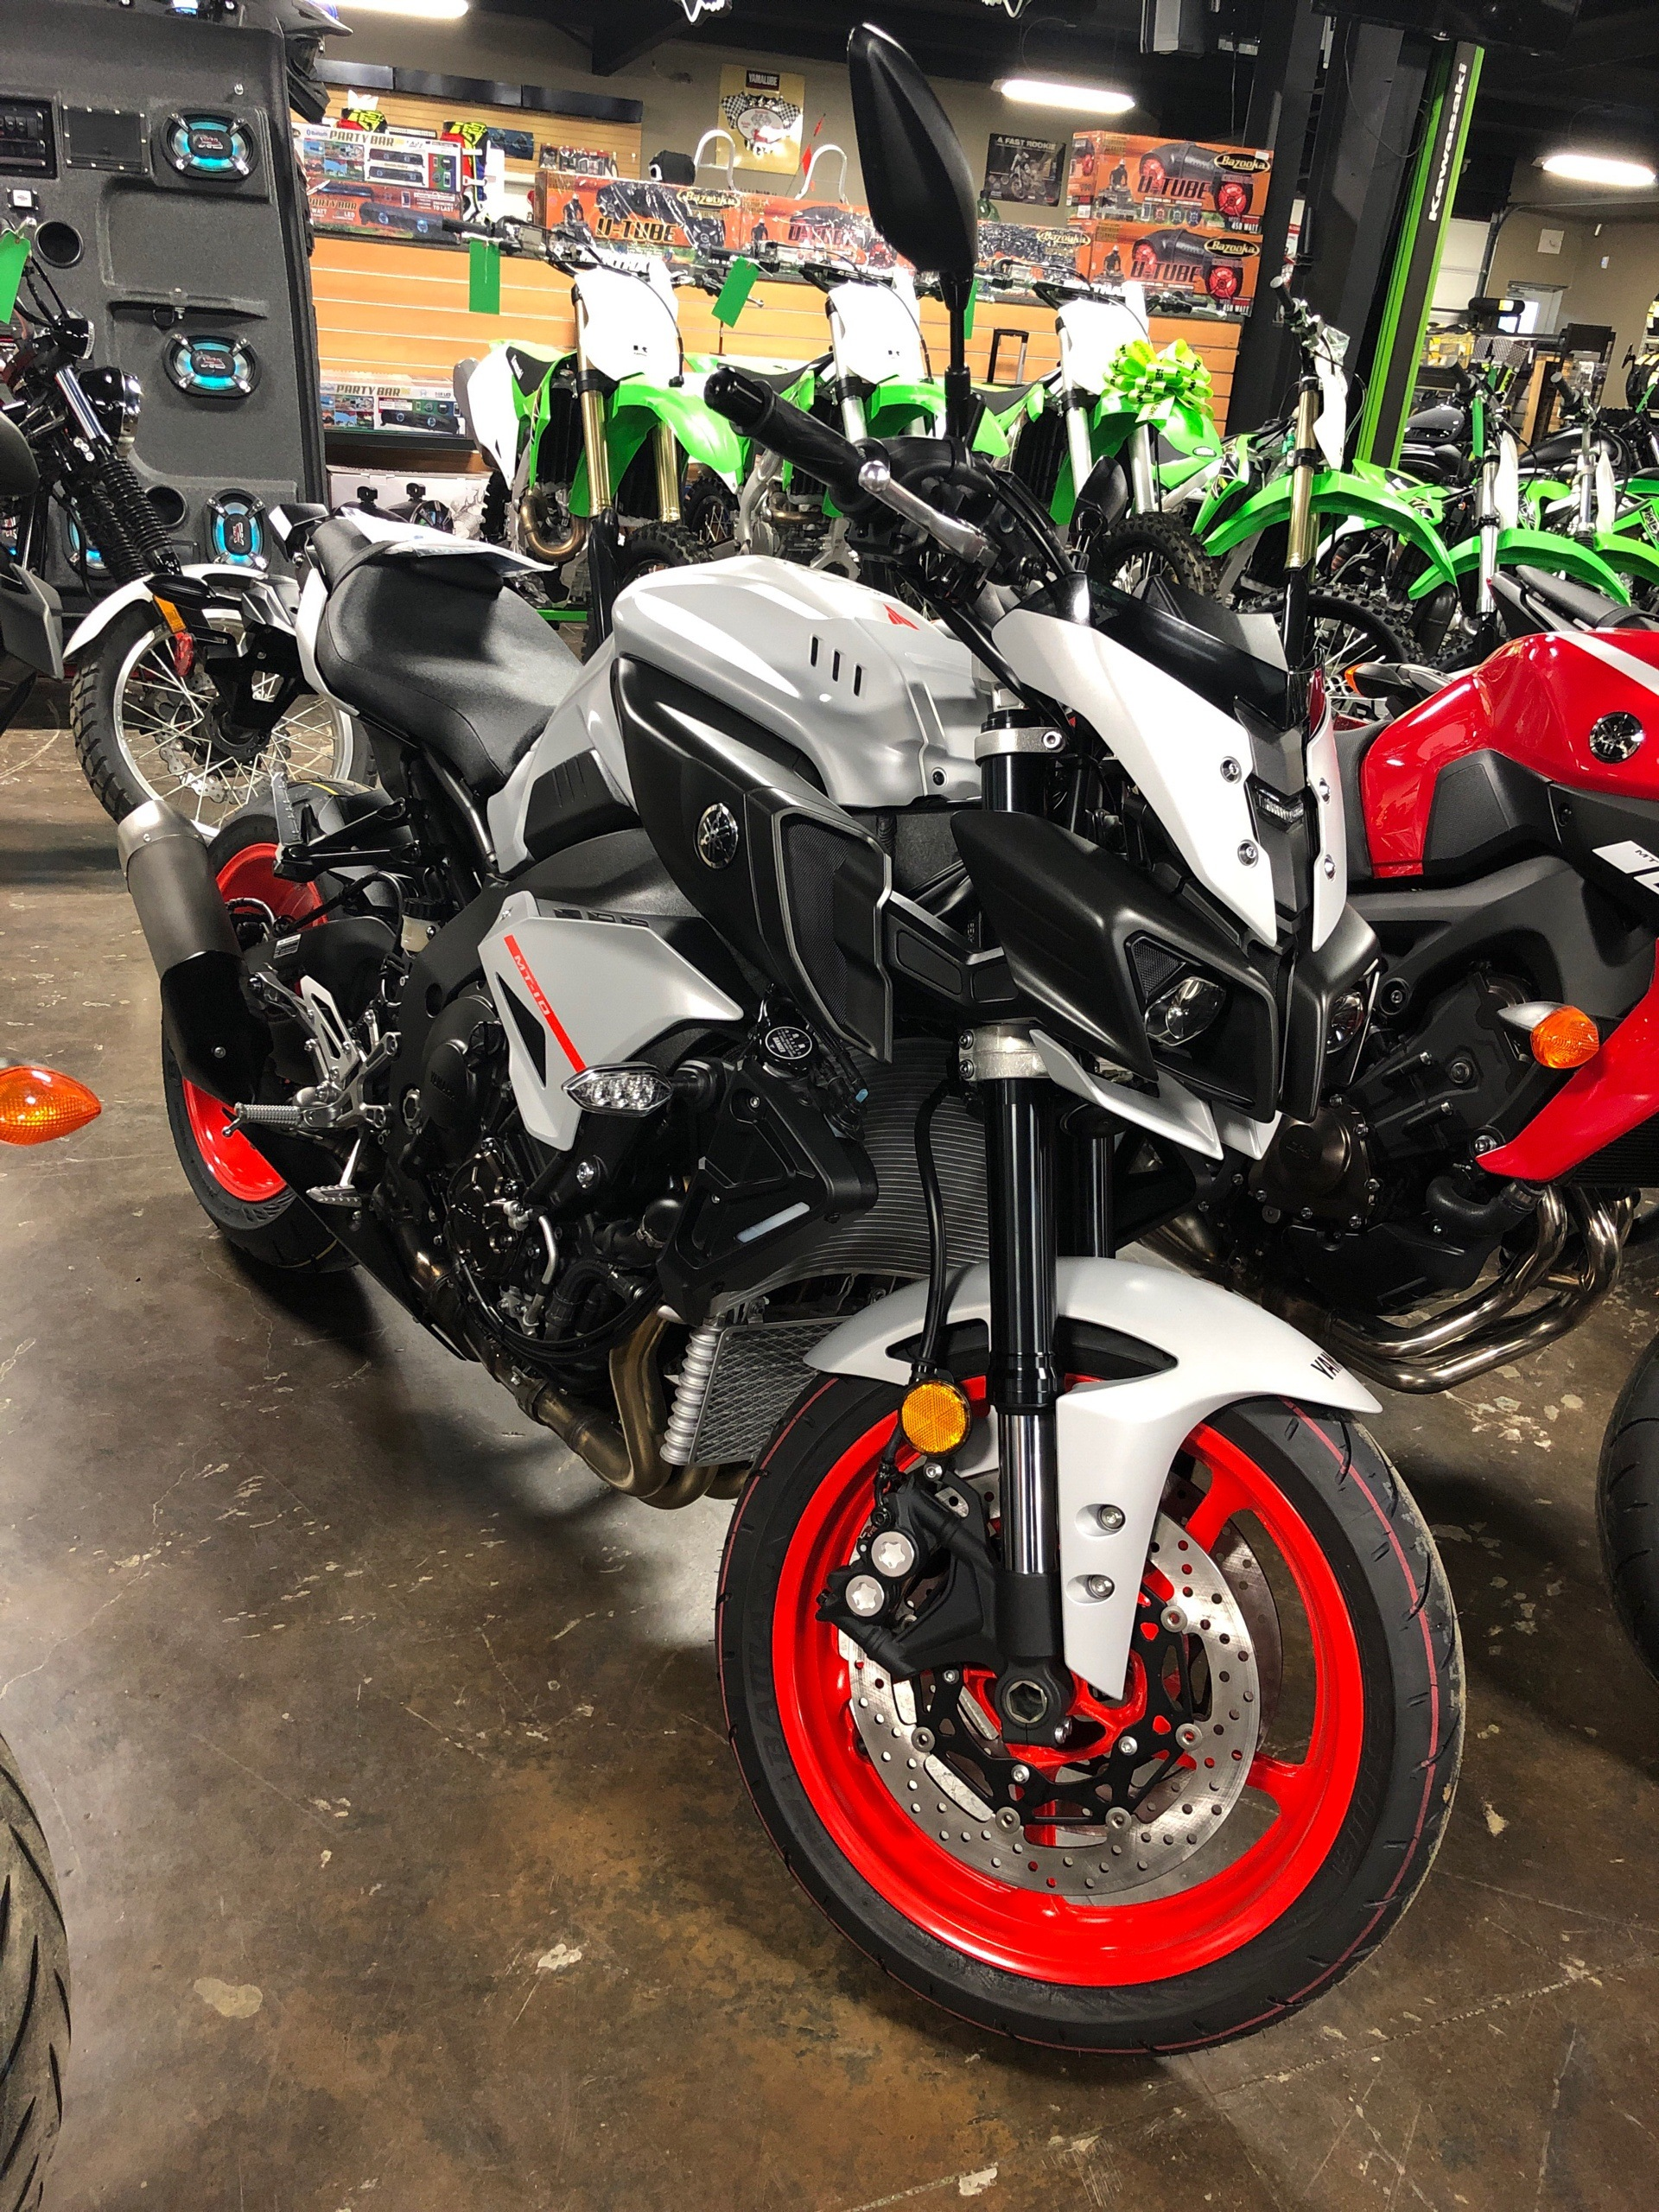 New 2019 Yamaha Mt 10 Motorcycles In Tyler Tx Stock Number 02380